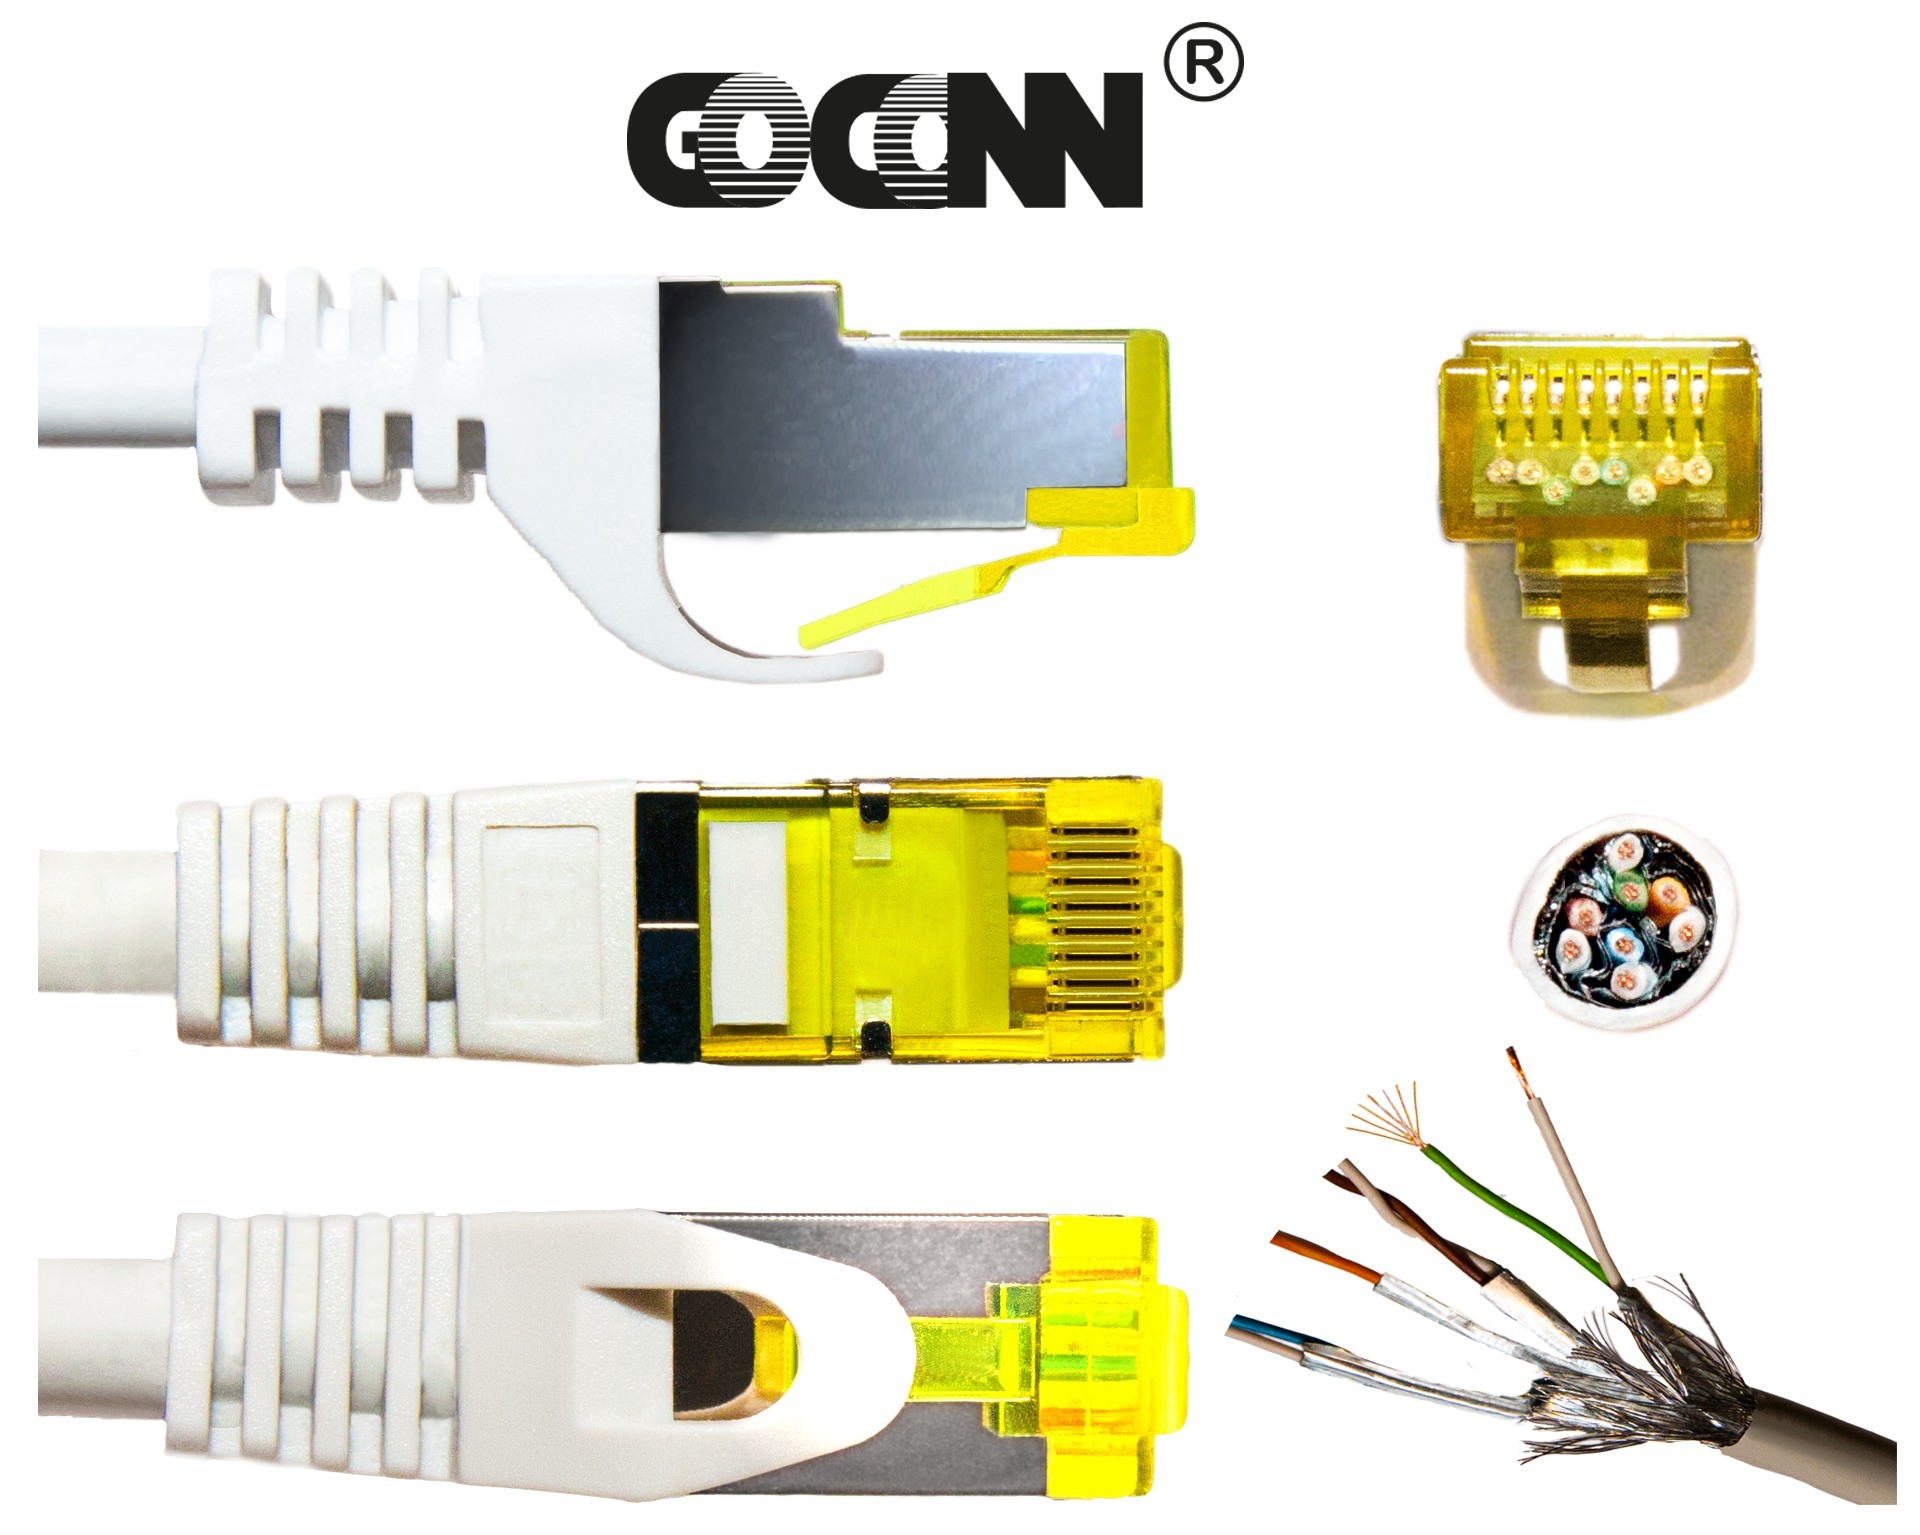 GoConn Patchkabel mit Cat7 Rohkabel 2m orange S/FTP PiMF 500MHz 2xgeschirmt